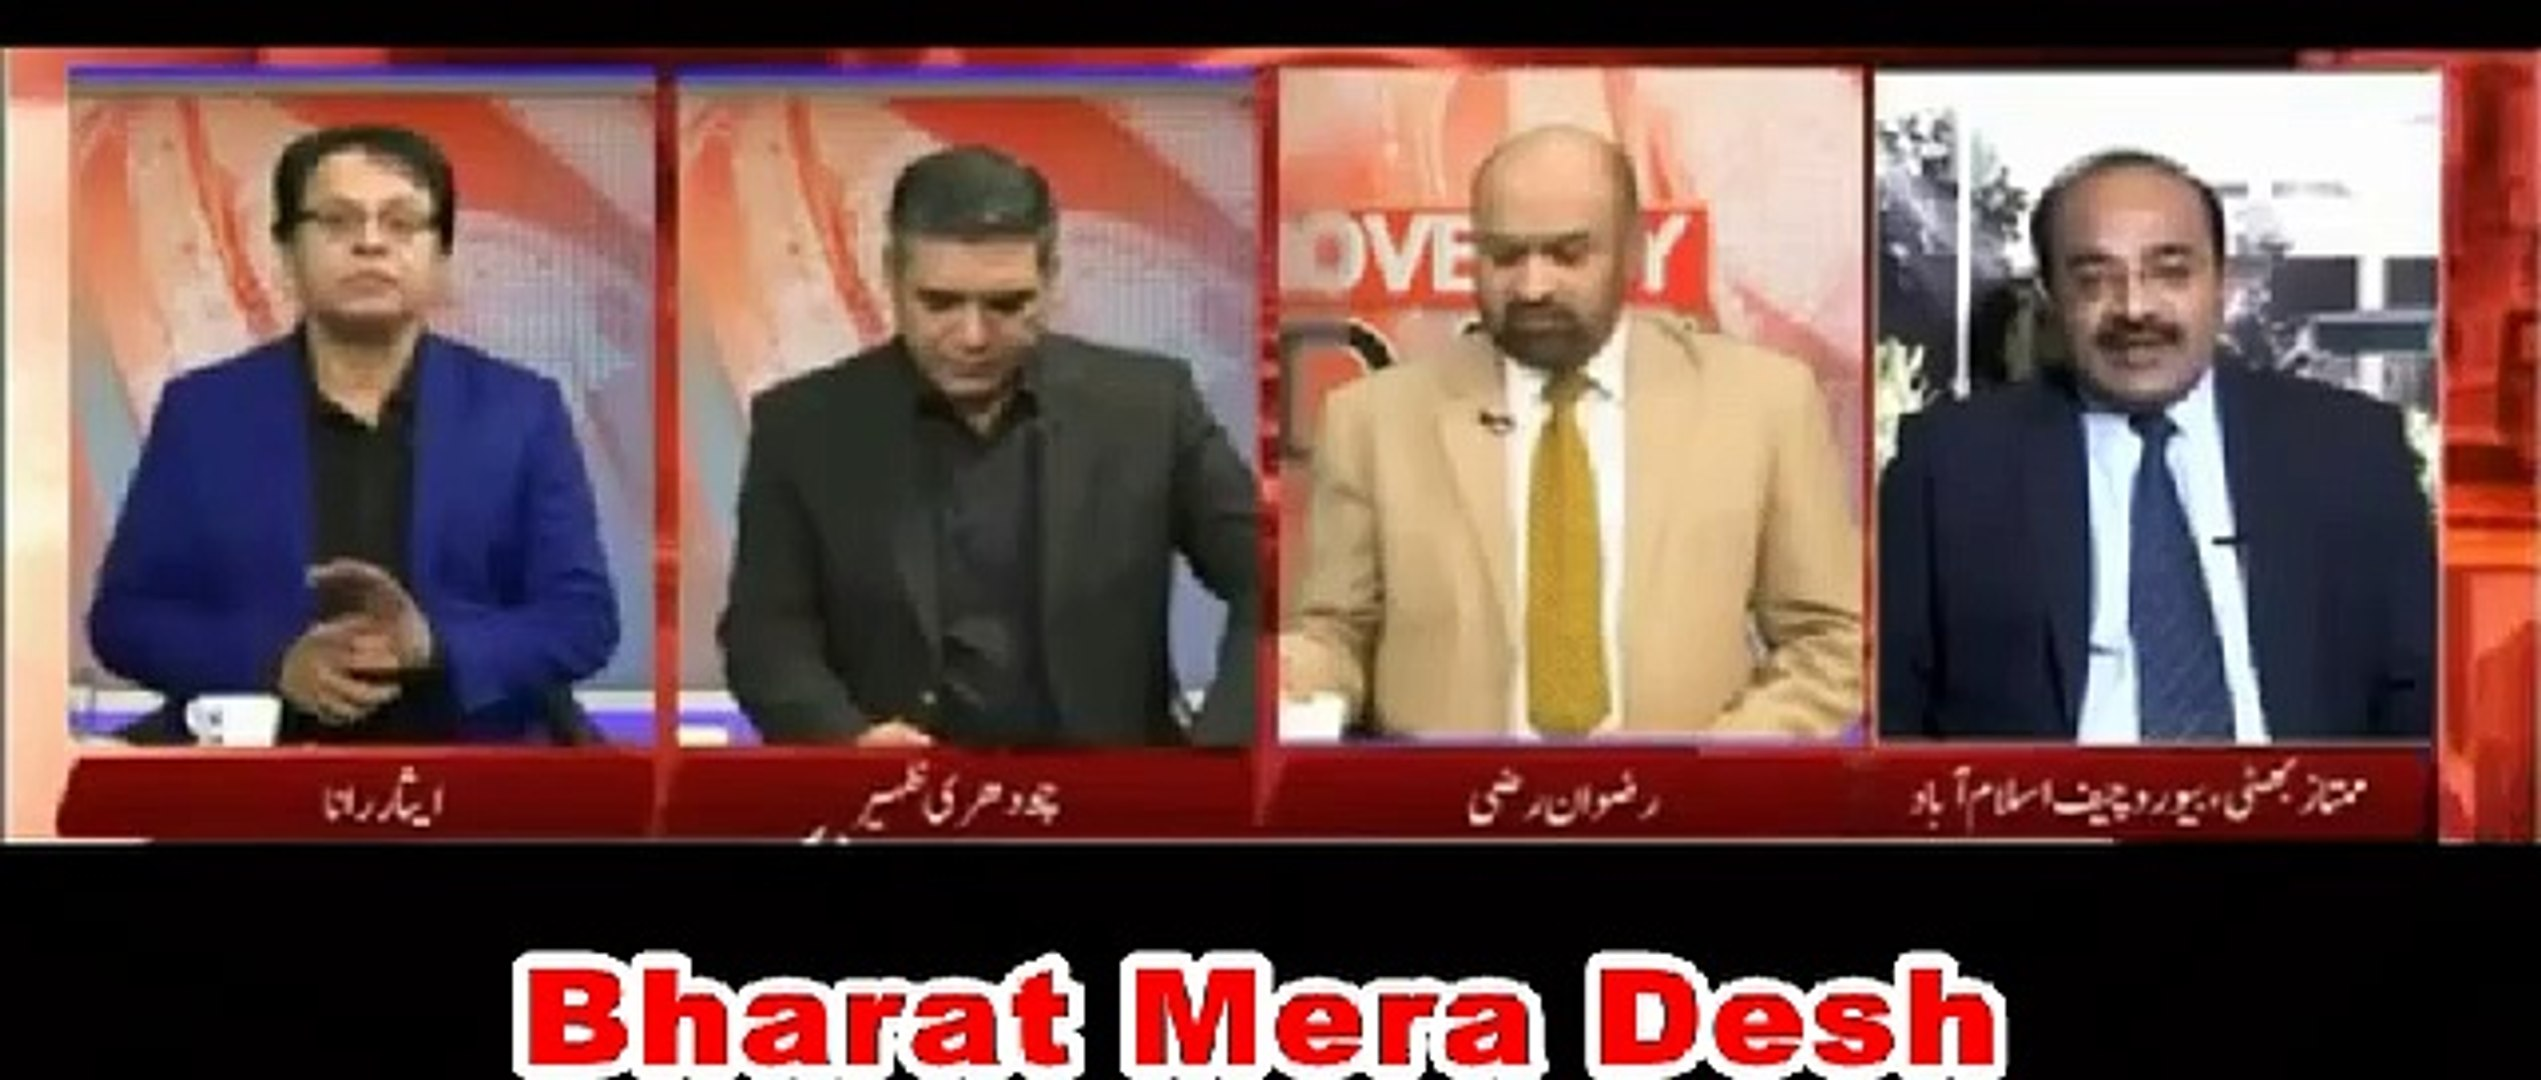 Pak Media Latest - Our Total budget Rs 6000 Billion but India's Defence budget Rs 7000 Billion